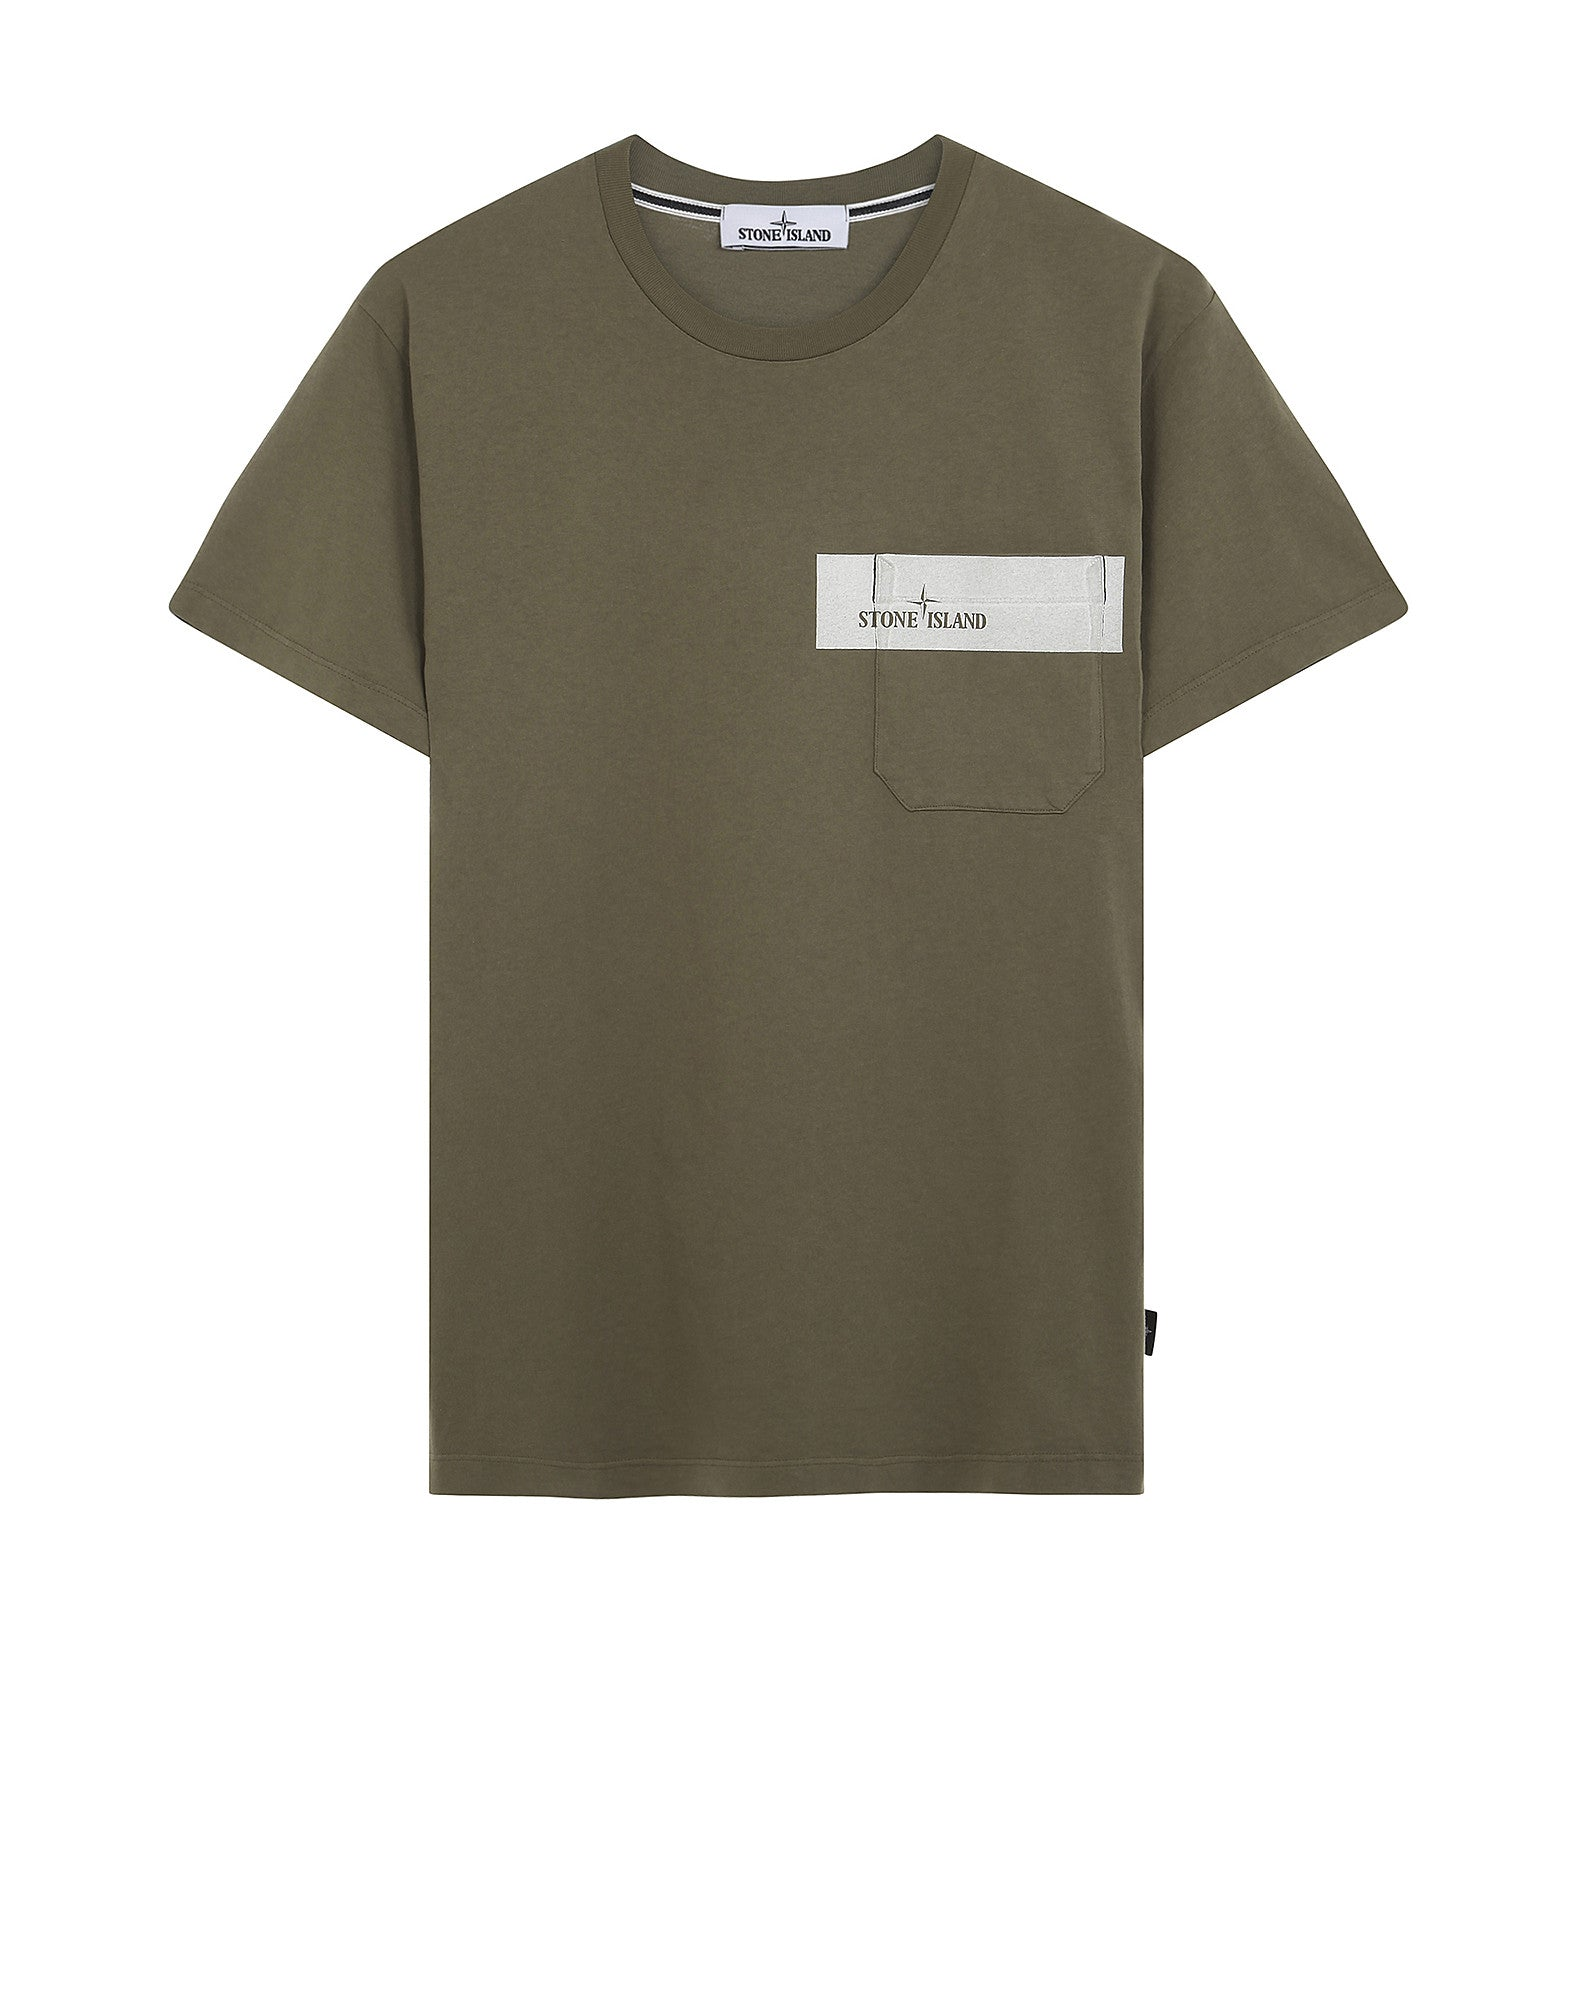 24285 Pocket T-Shirt in Khaki